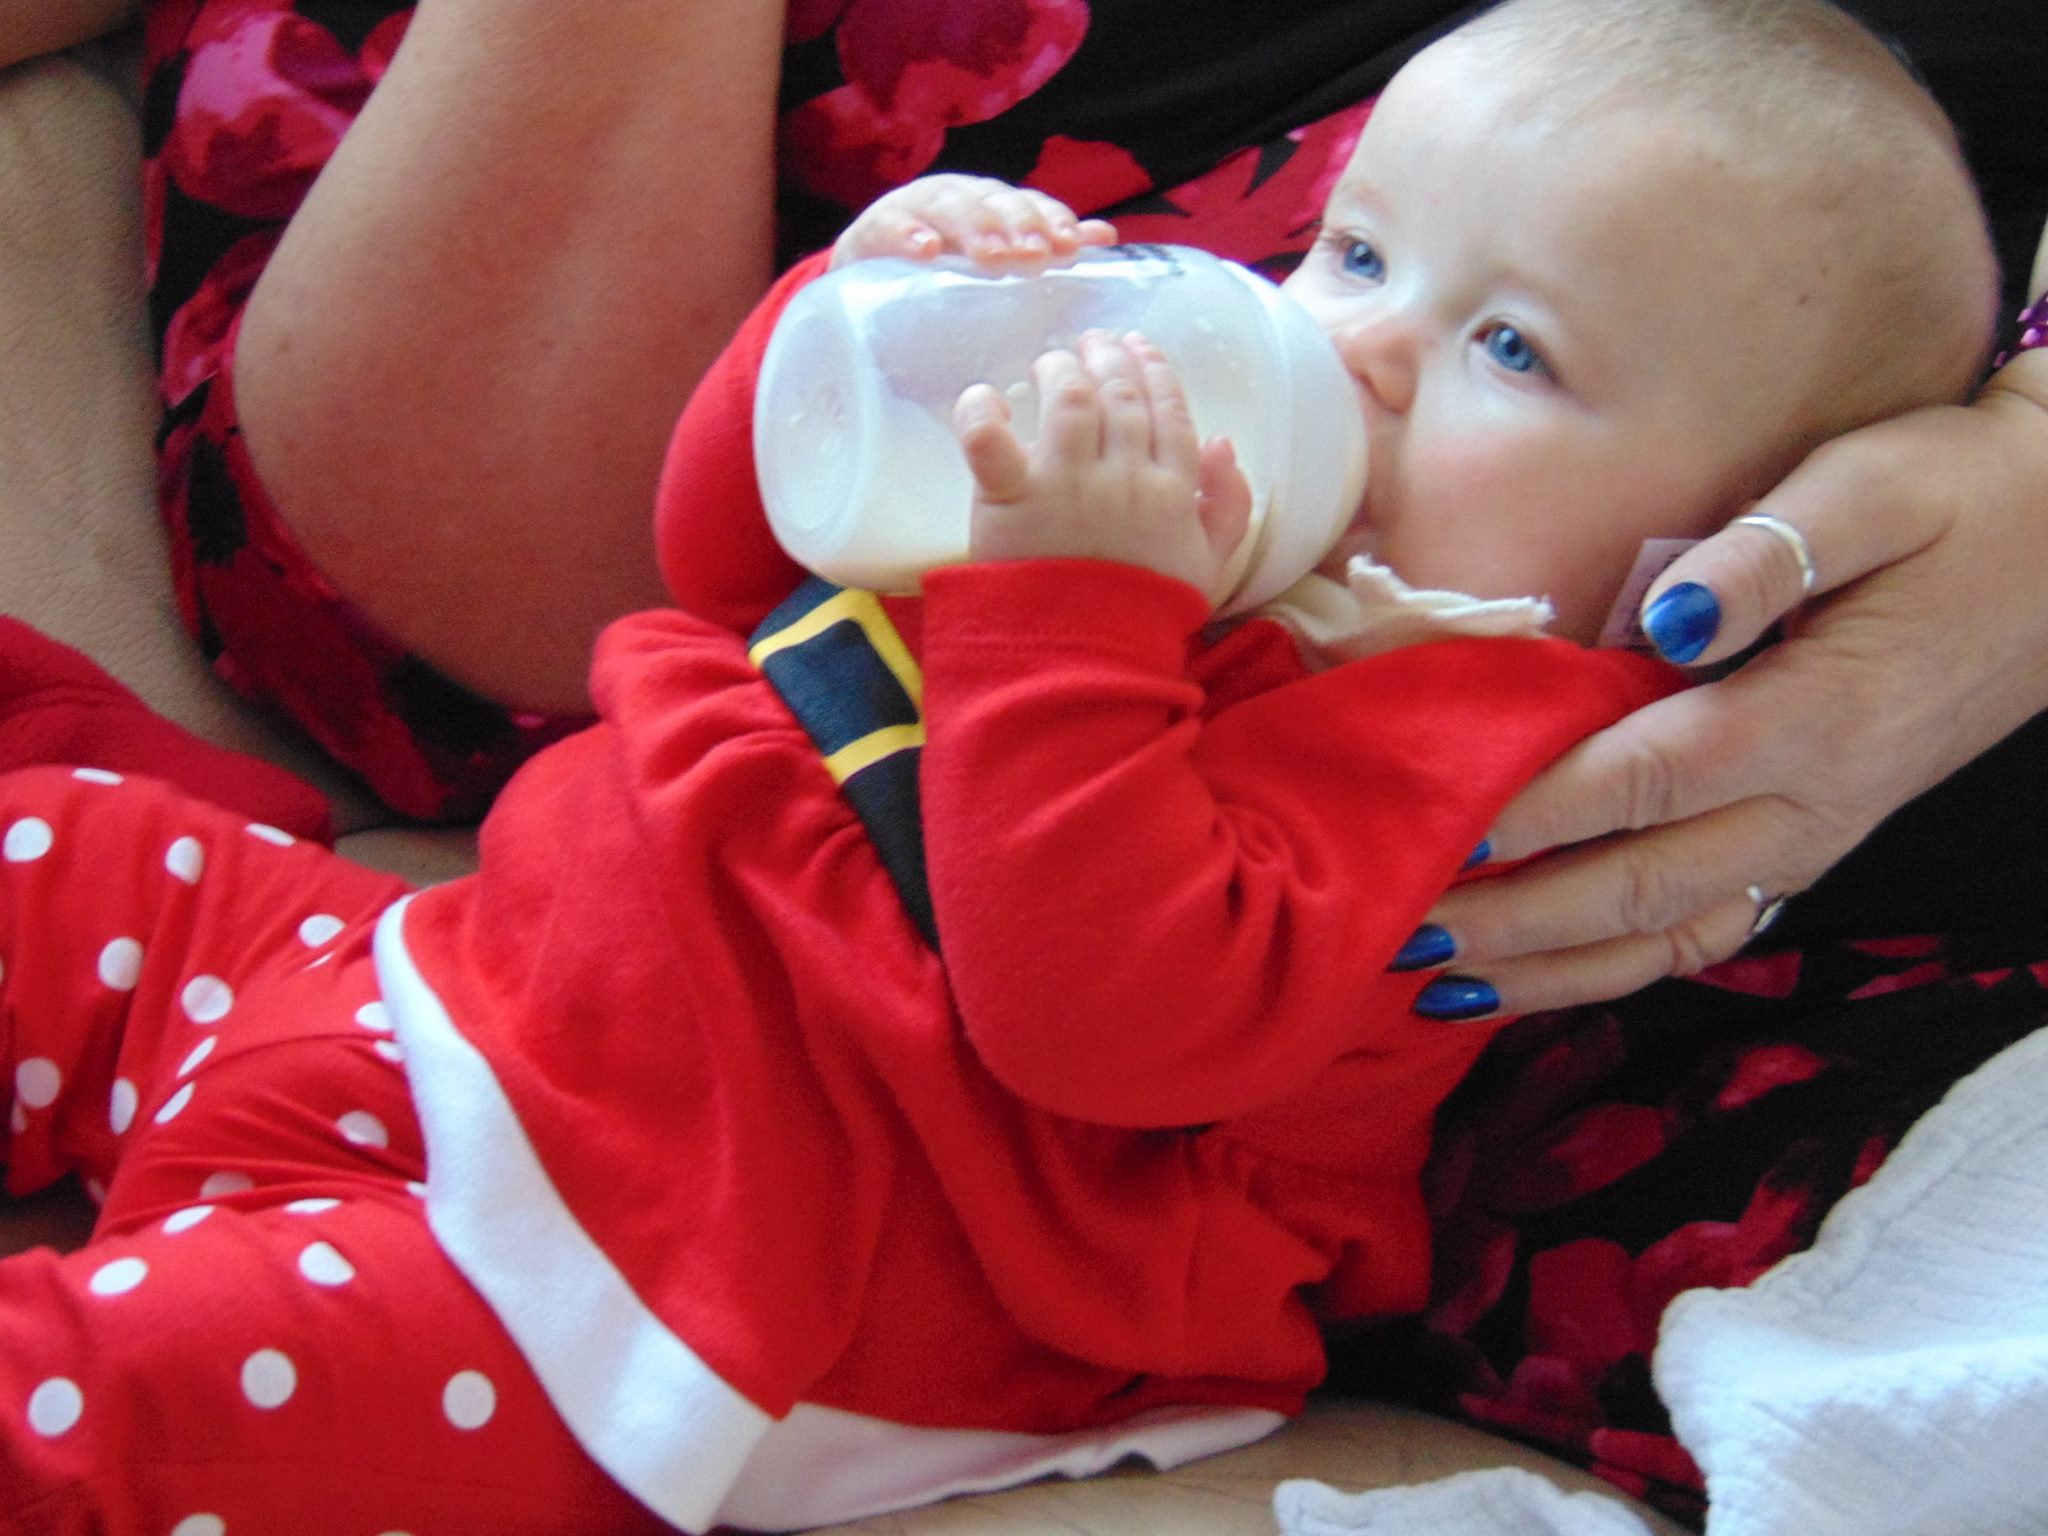 Little girl with bright blue eys drinking milk in a santa outfit.